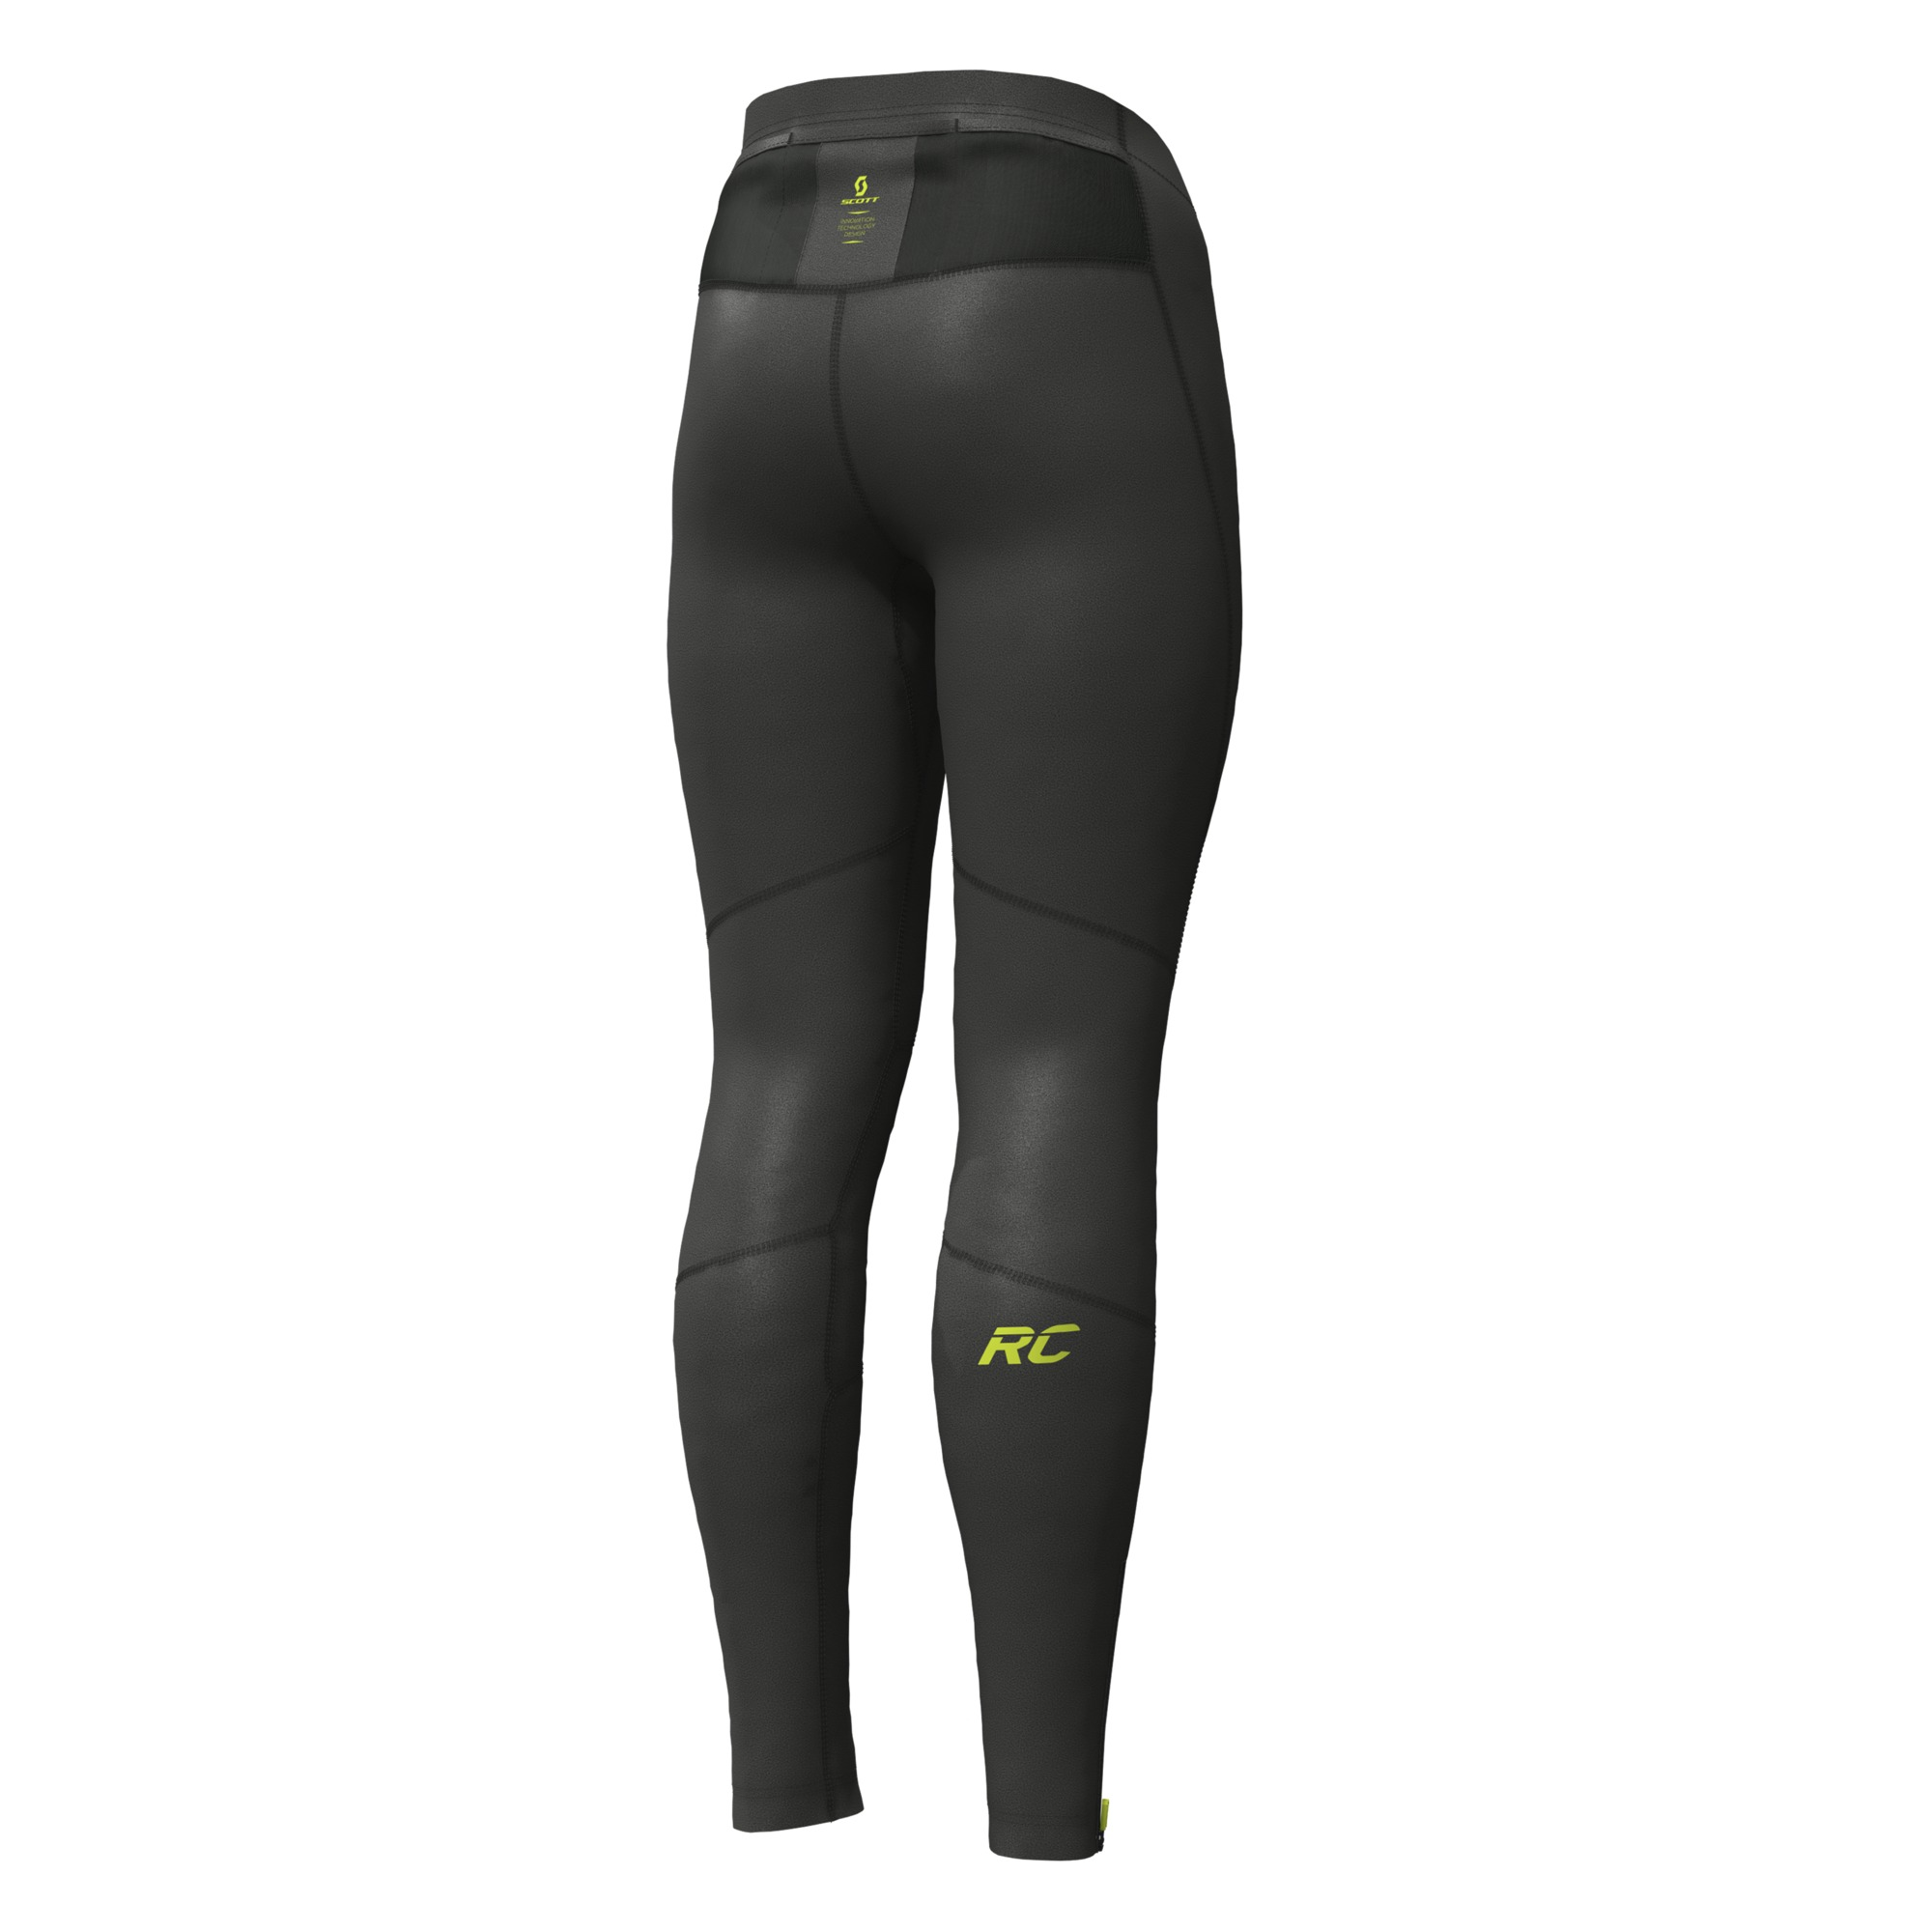 SCOTT RC Run Women's Full Tight